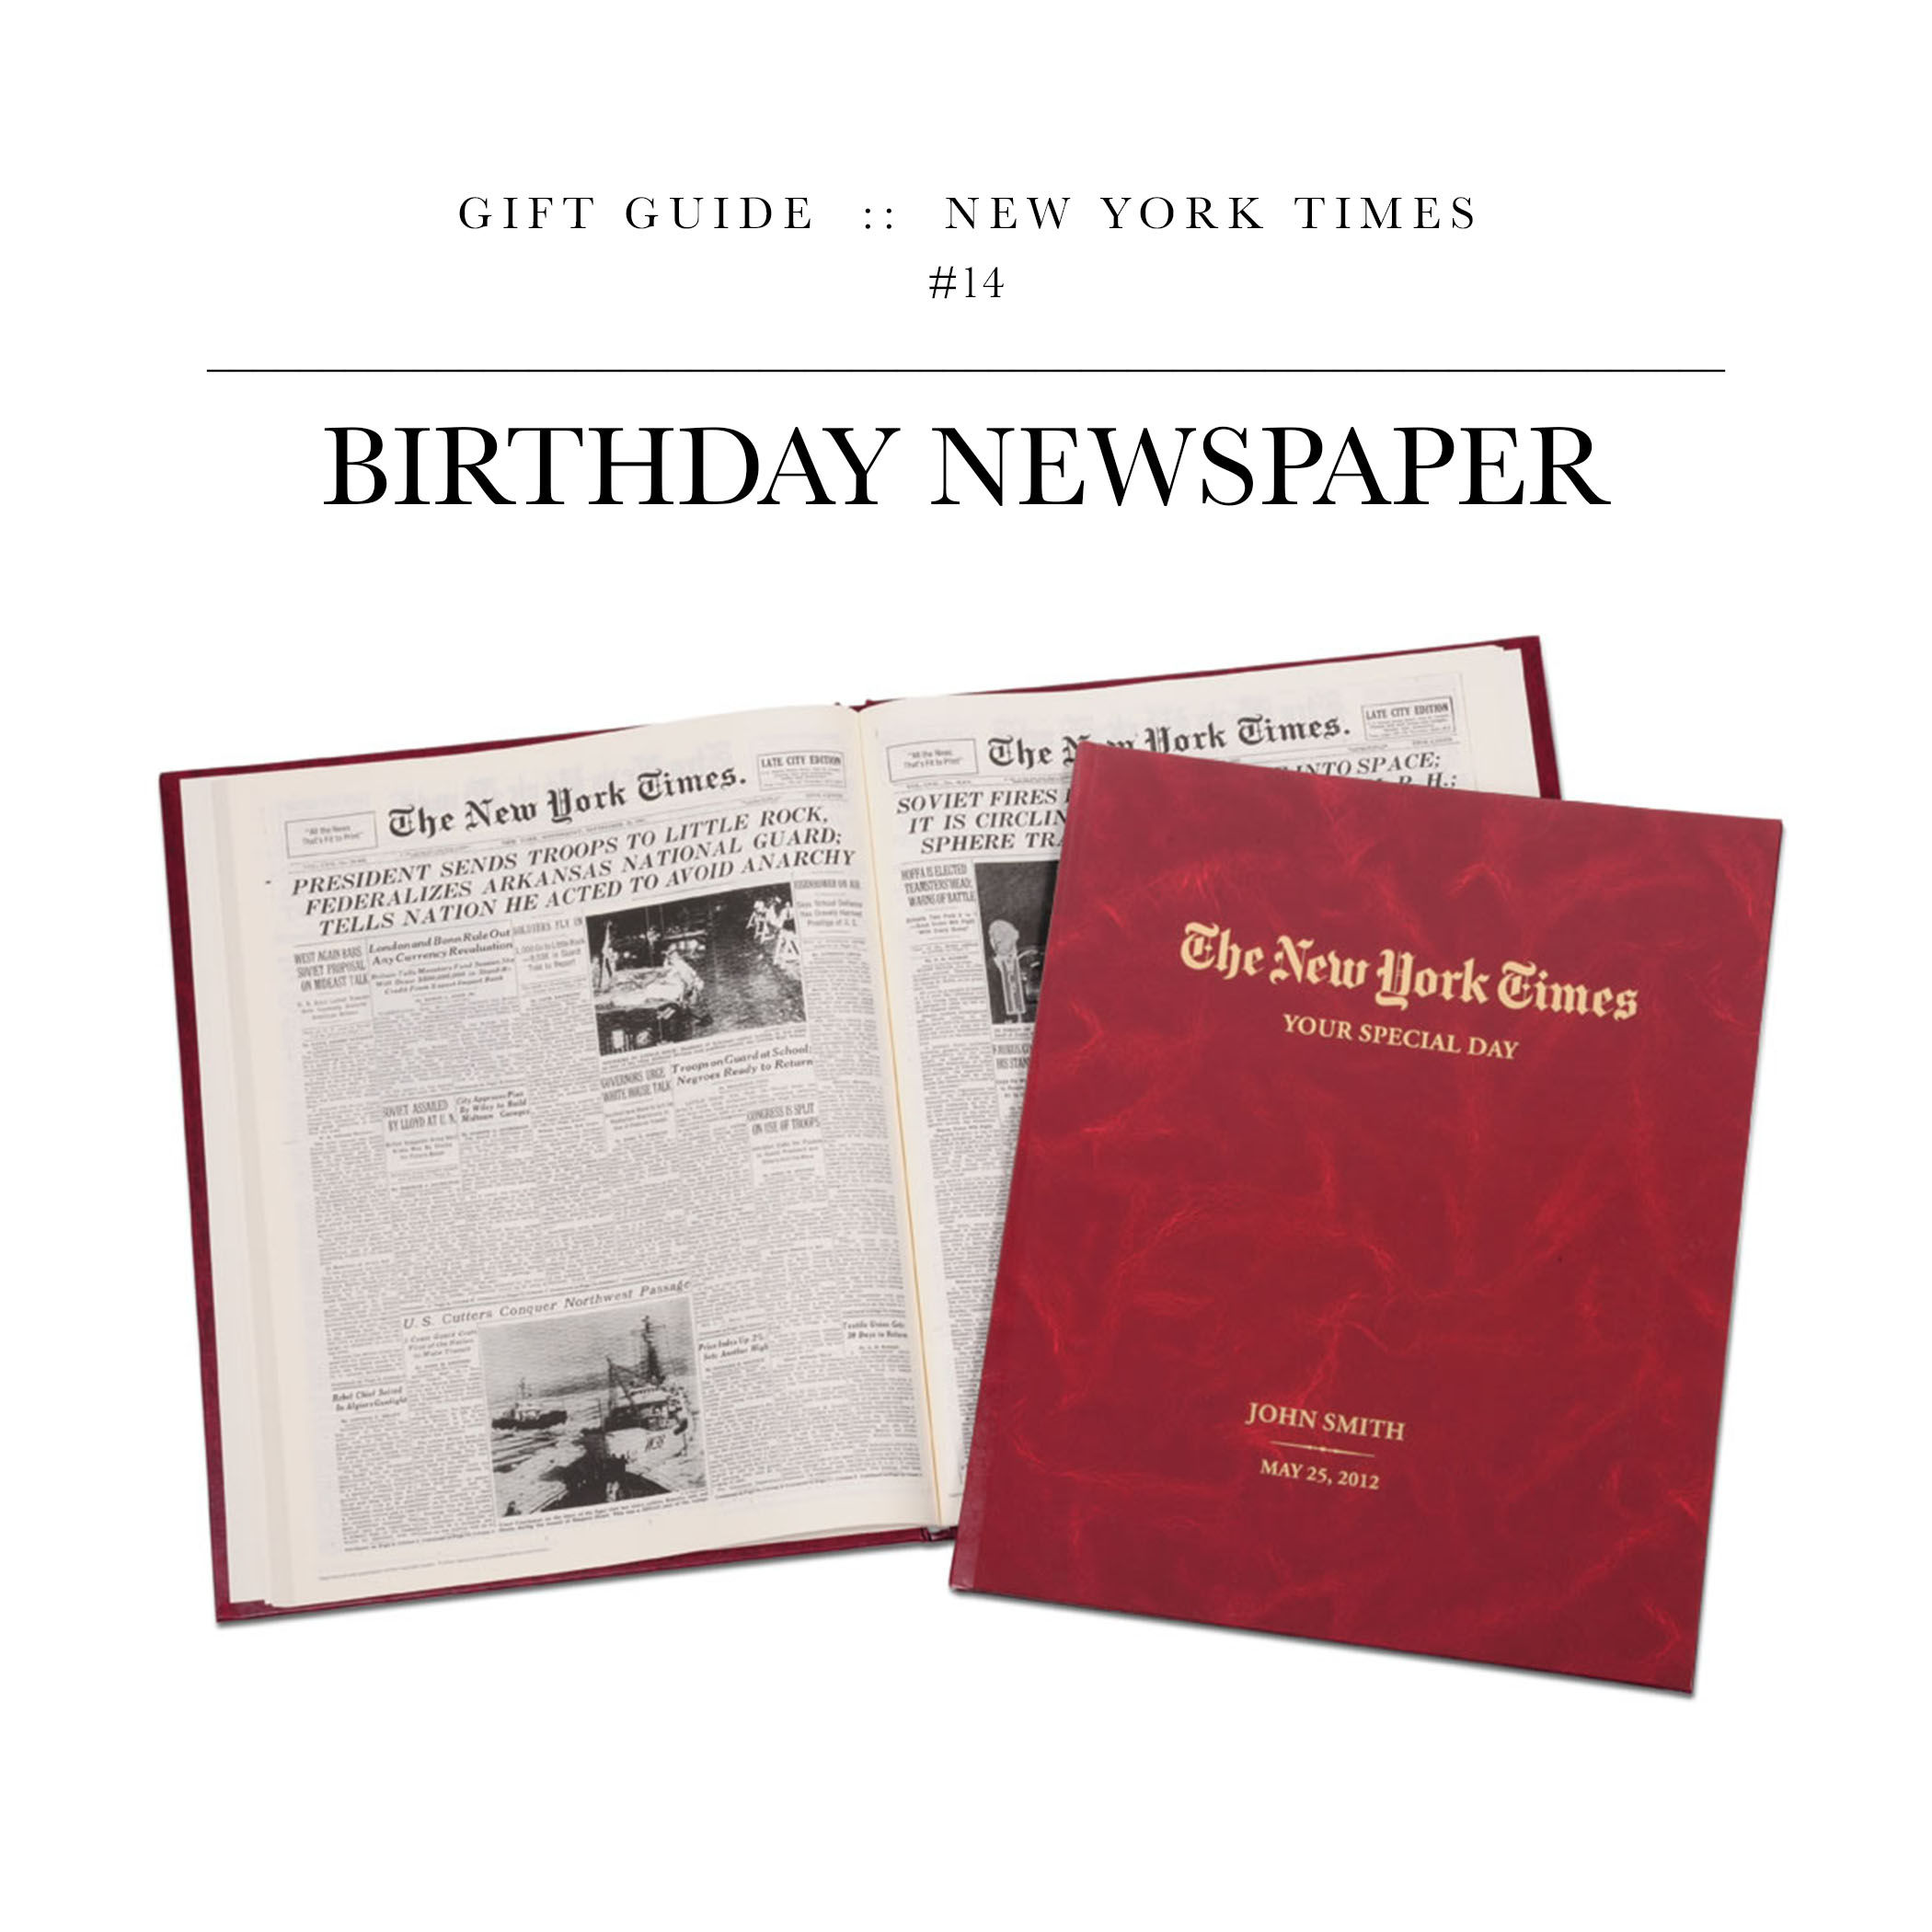 Birthday Newspaper via The New York Times // This is actually a pretty cool gift. It's the complete New York Times on the day of the recipient's birth.